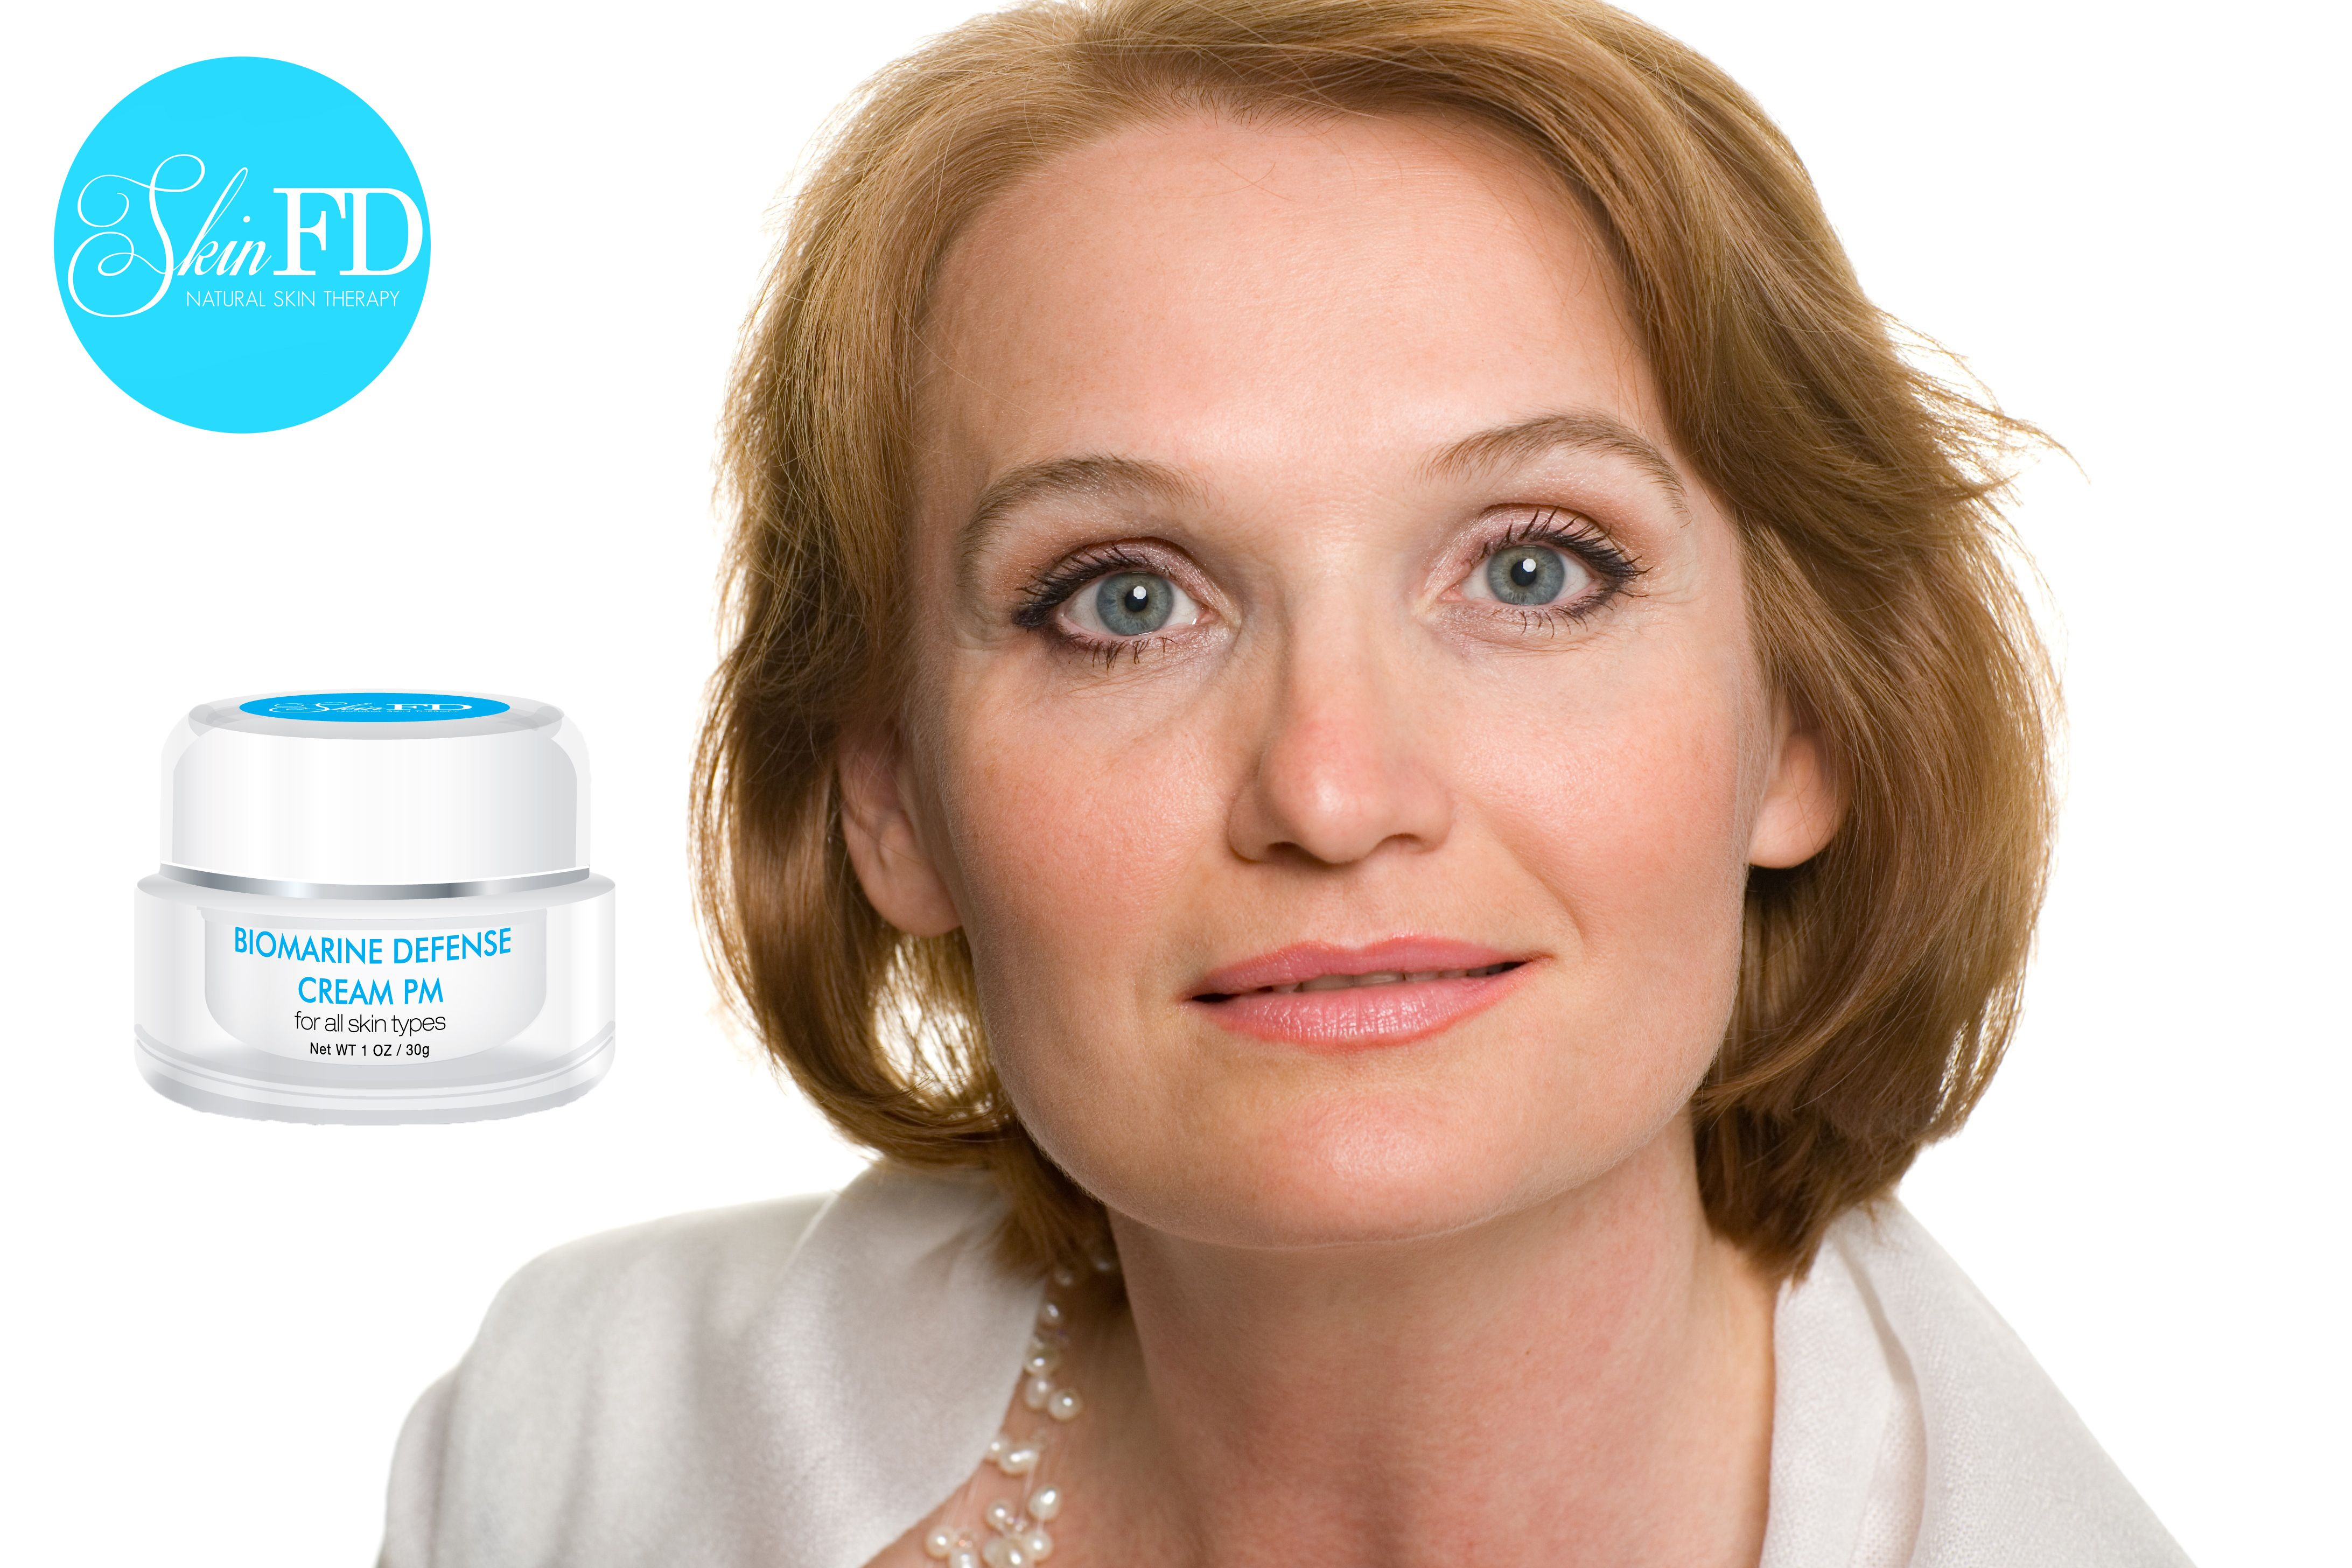 Biomarine Defense Cream PM gives you the best night